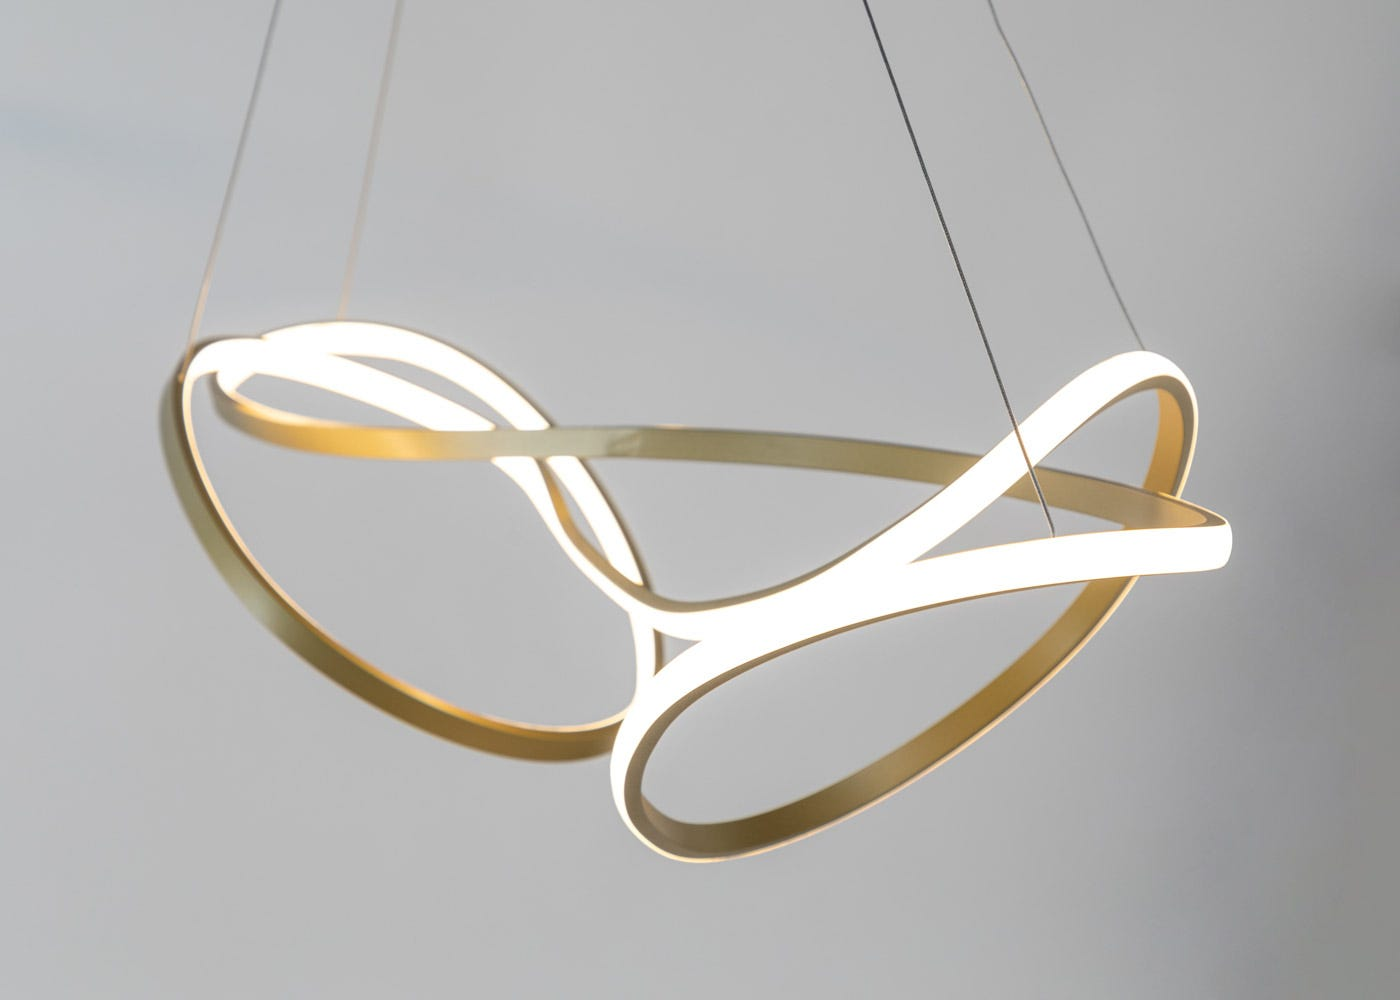 As shown: RIbbon LED Ceiling Pendant XL Satin Gold - Side profile (on).